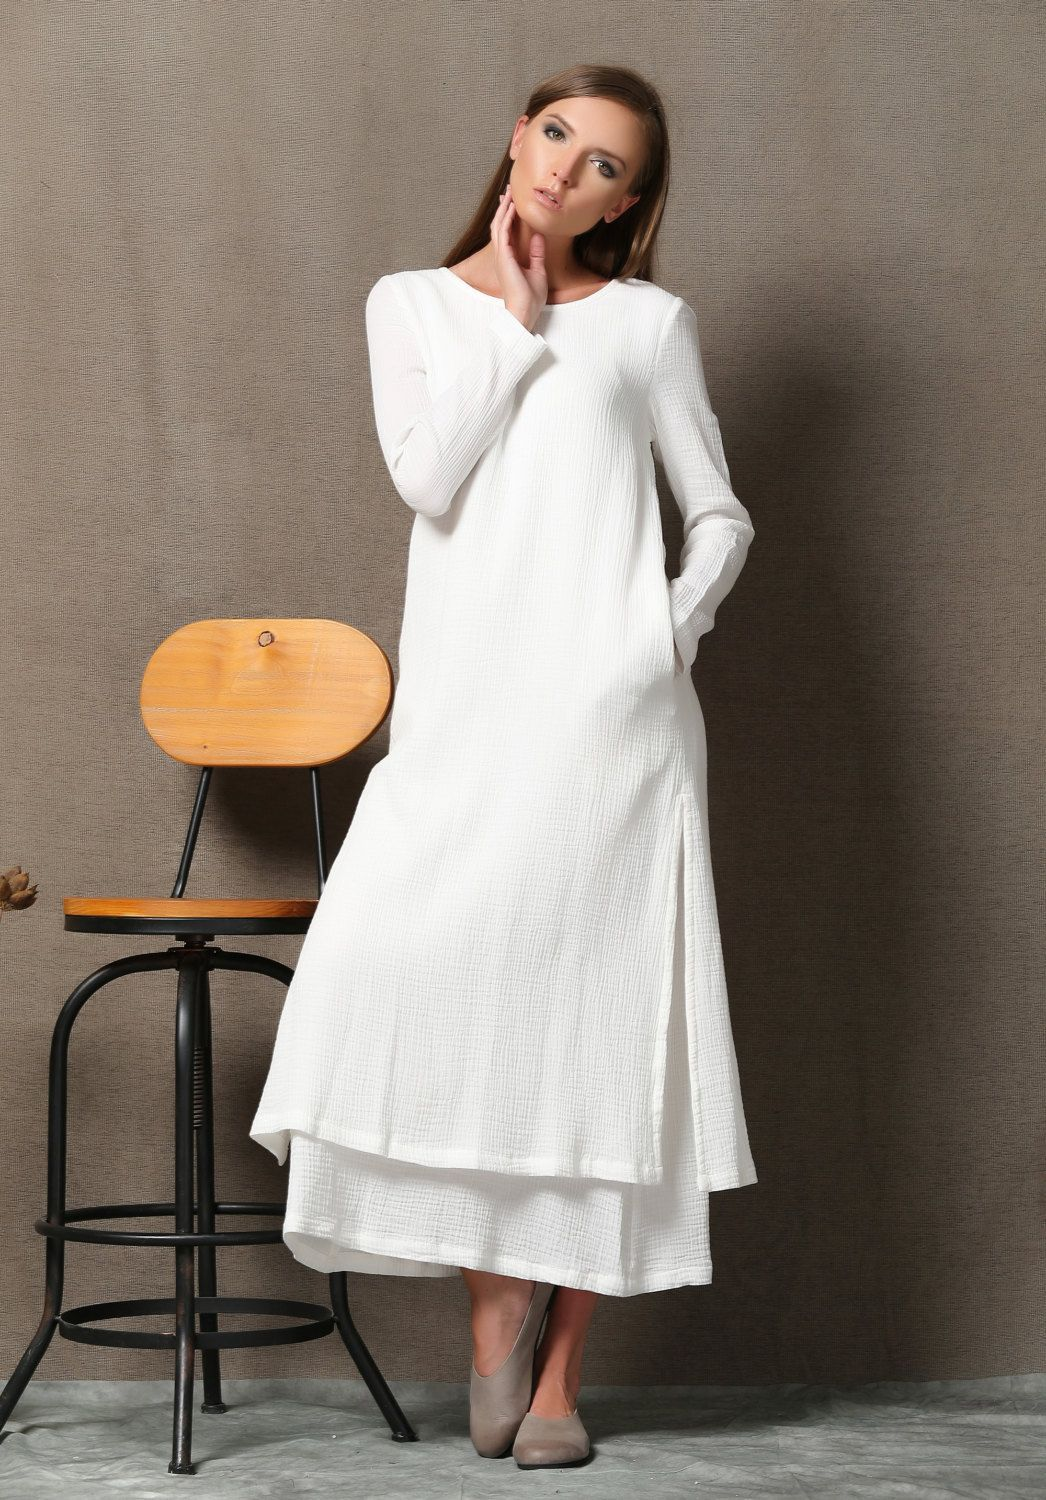 1bdc61526f2 White Linen Dress - Layered Loose-Fitting Plus Size Casual Comfortable Long  Sleeve Handmade Clothing C554 by YL1dress on Etsy